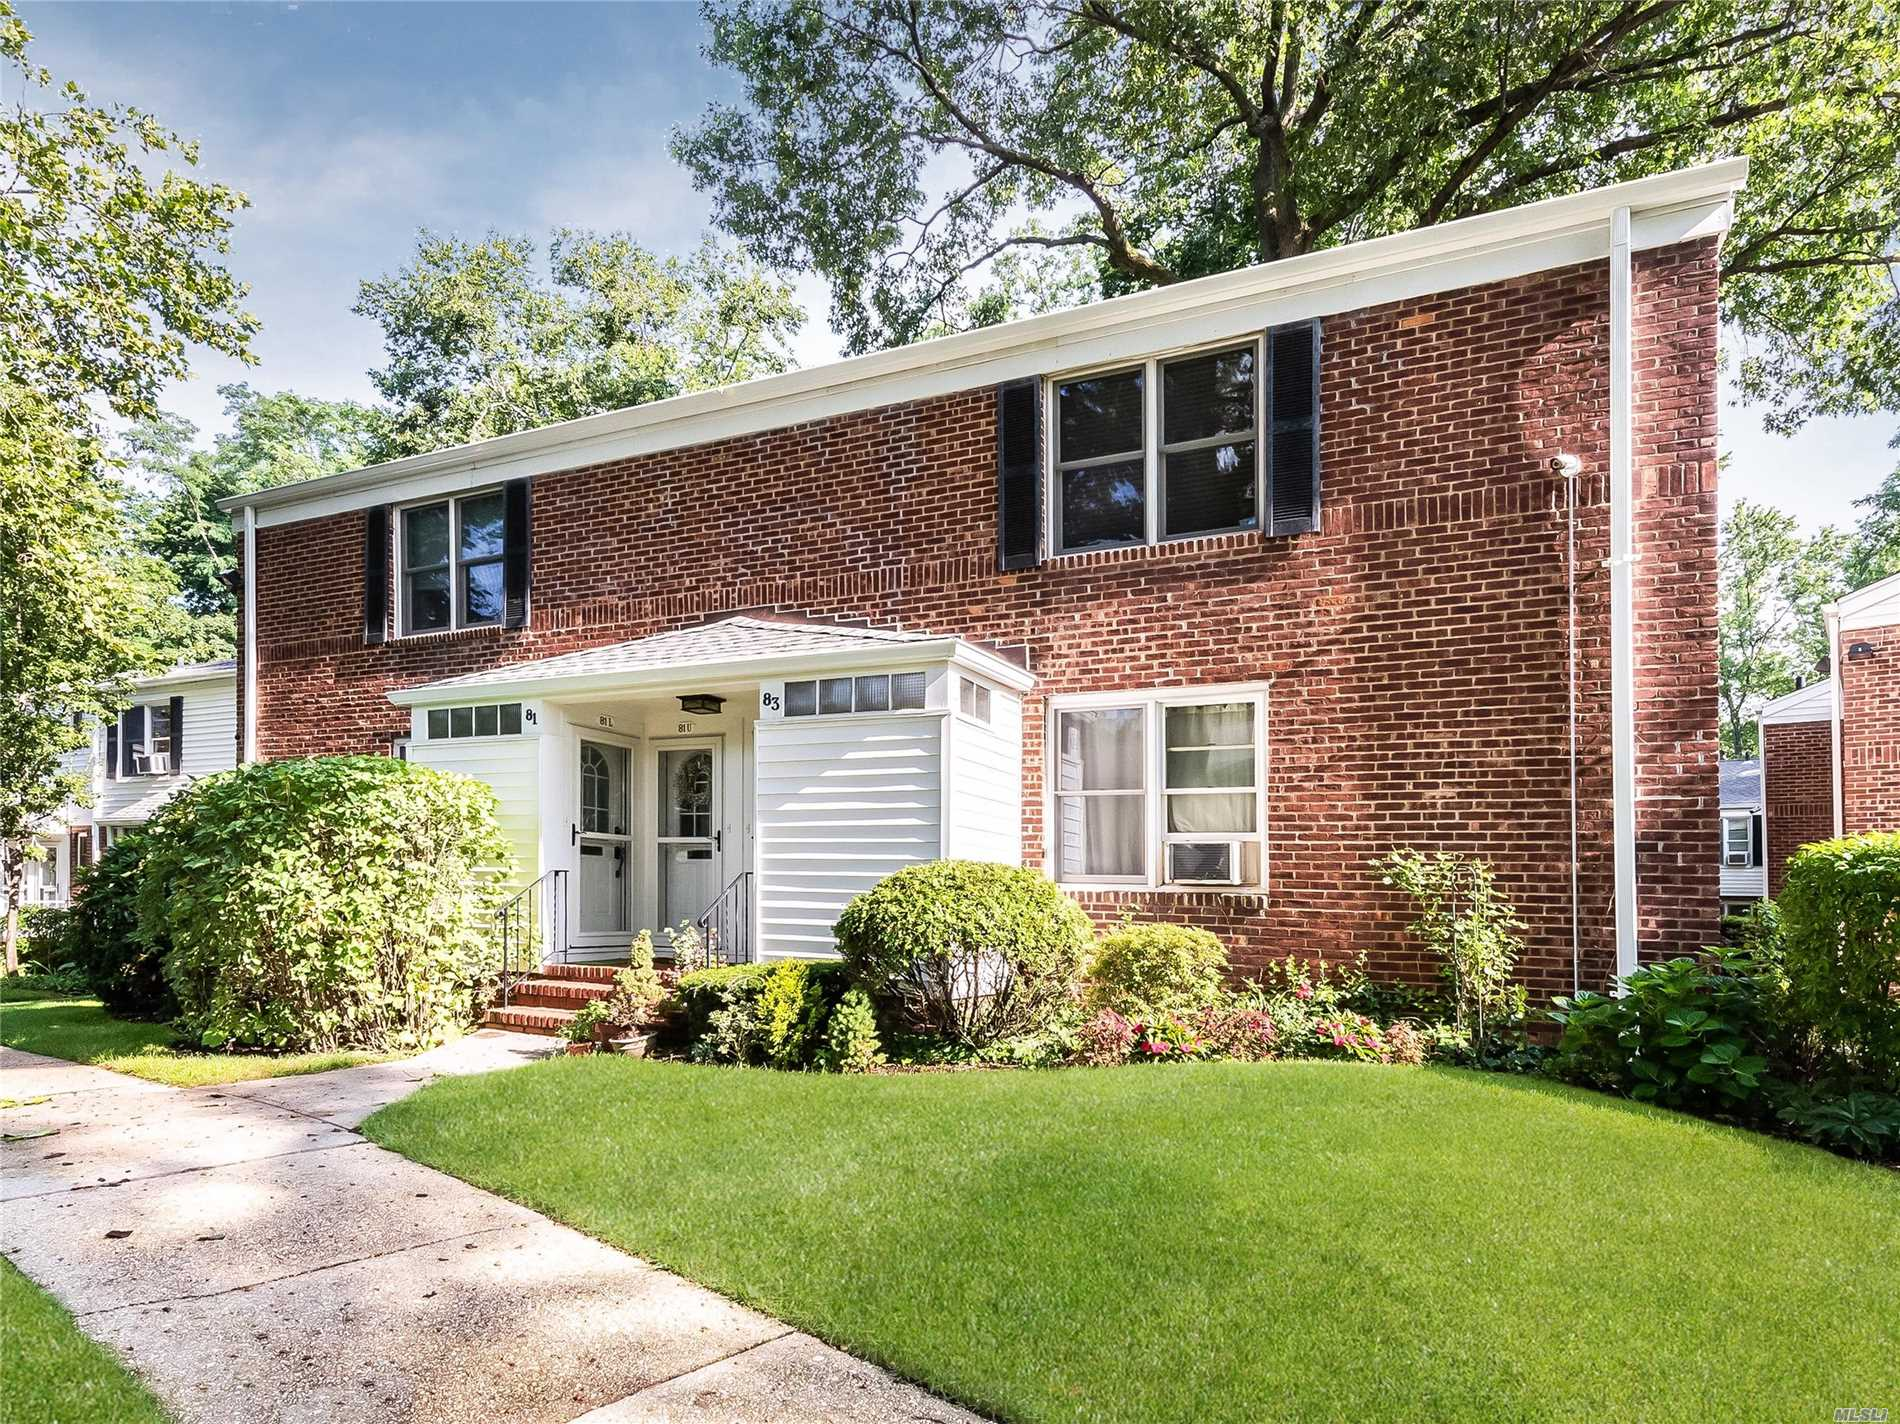 Property for sale at 81 Glen Keith Rd, Glen Cove,  NY 11542